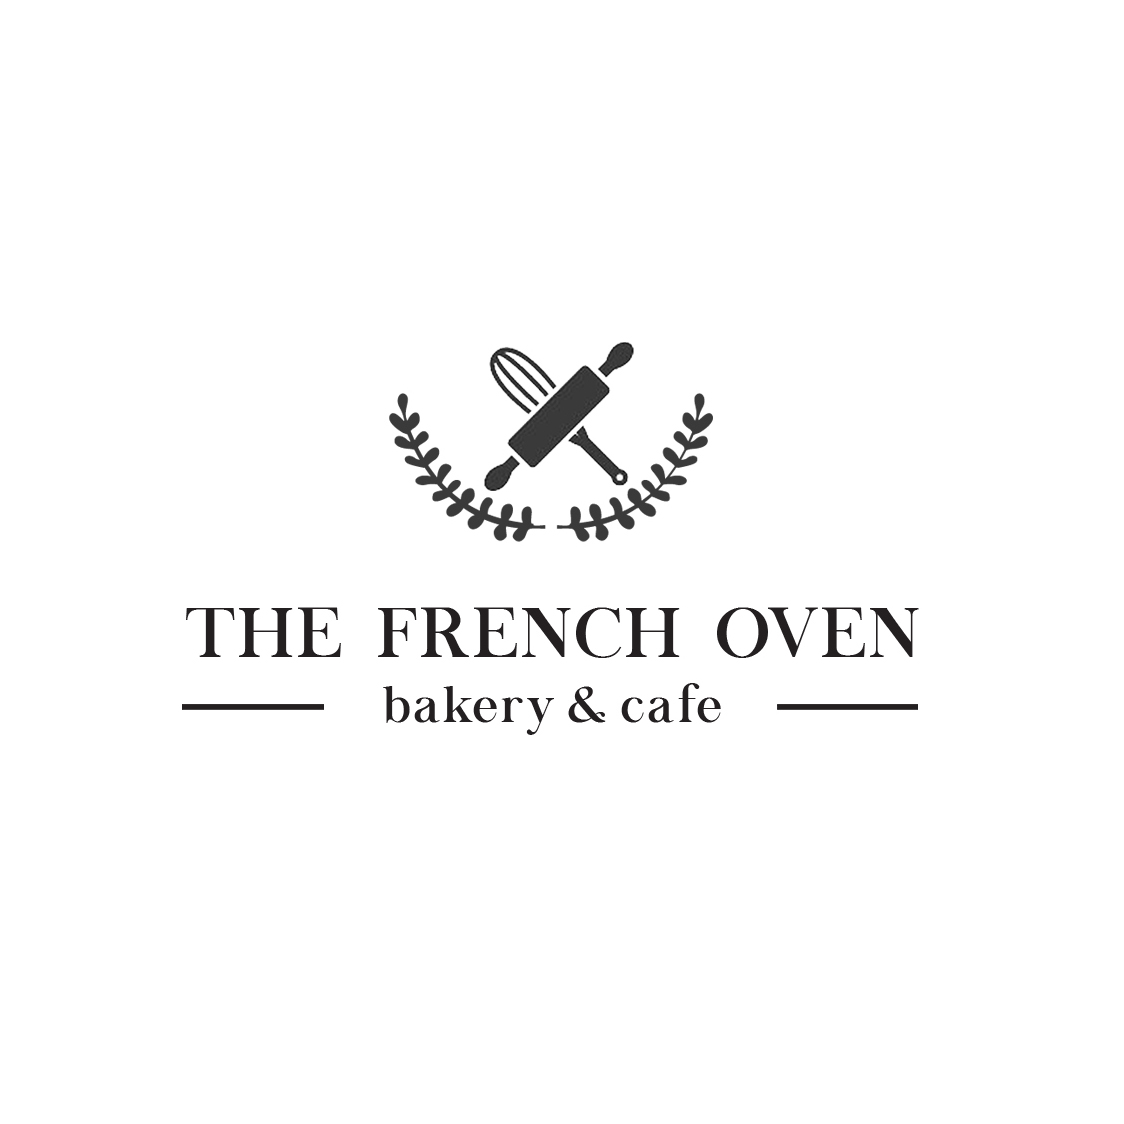 Upmarket Serious French Restaurant Logo Design For The French Oven Bakery And Cafe By Farah Q Design 15639463